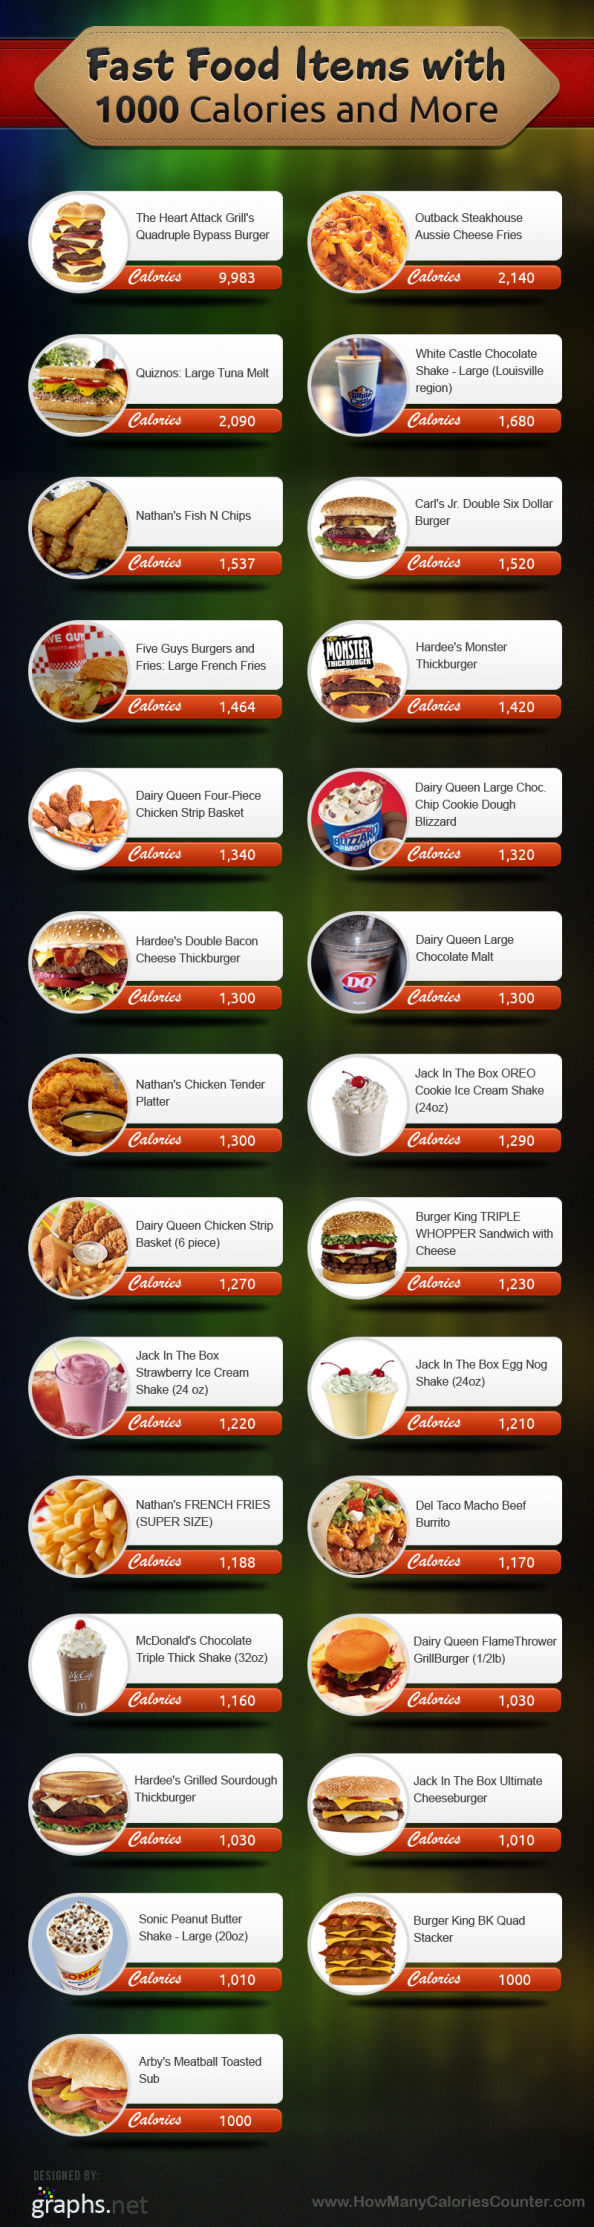 Fast food items with calories and more infographic also good rh pinterest